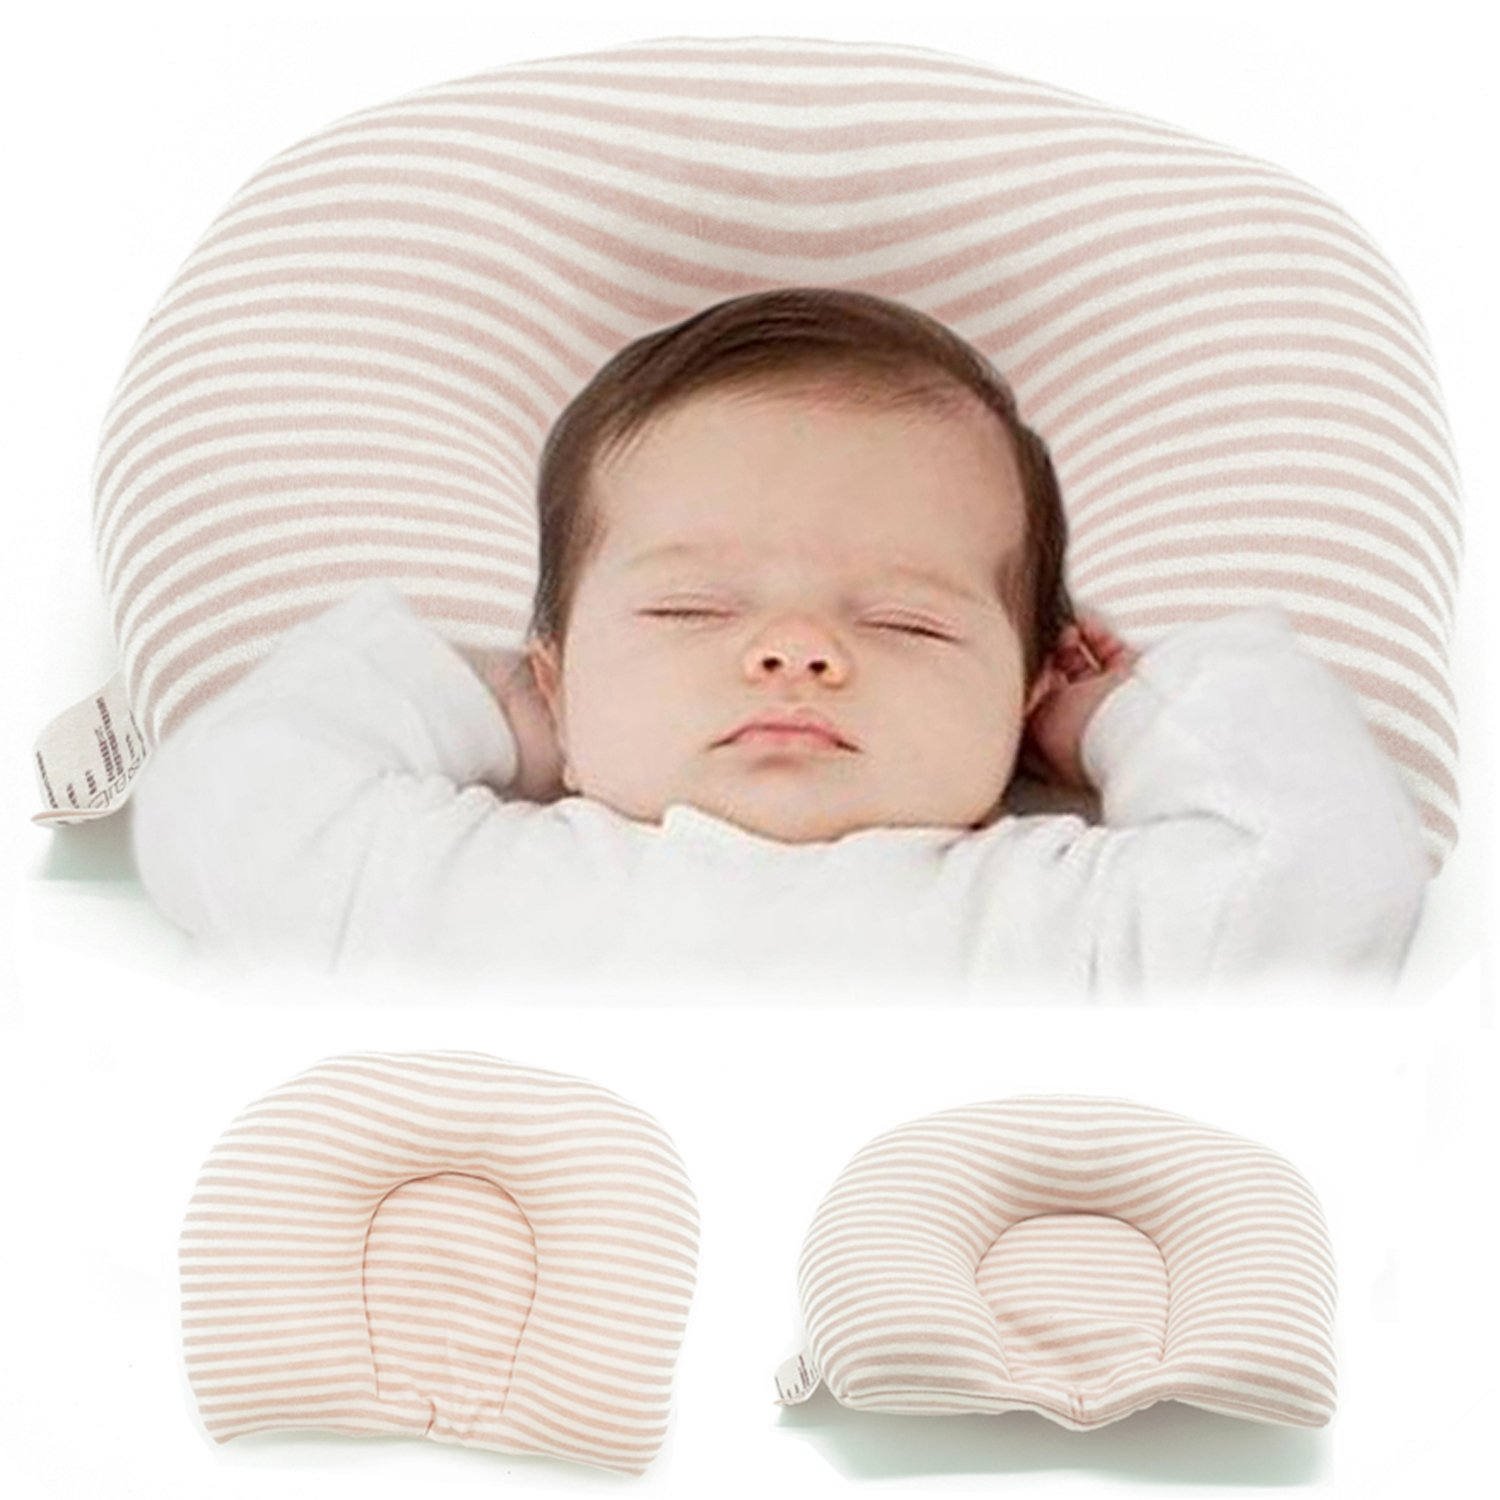 Newborn Baby Pillow Infant Pillow Infant Head Shaping Pillow Newborn Pillow 3 Sizes Baby Pillow 0-2-6-8 Months (2-8 Months Old) by MICROFIRE